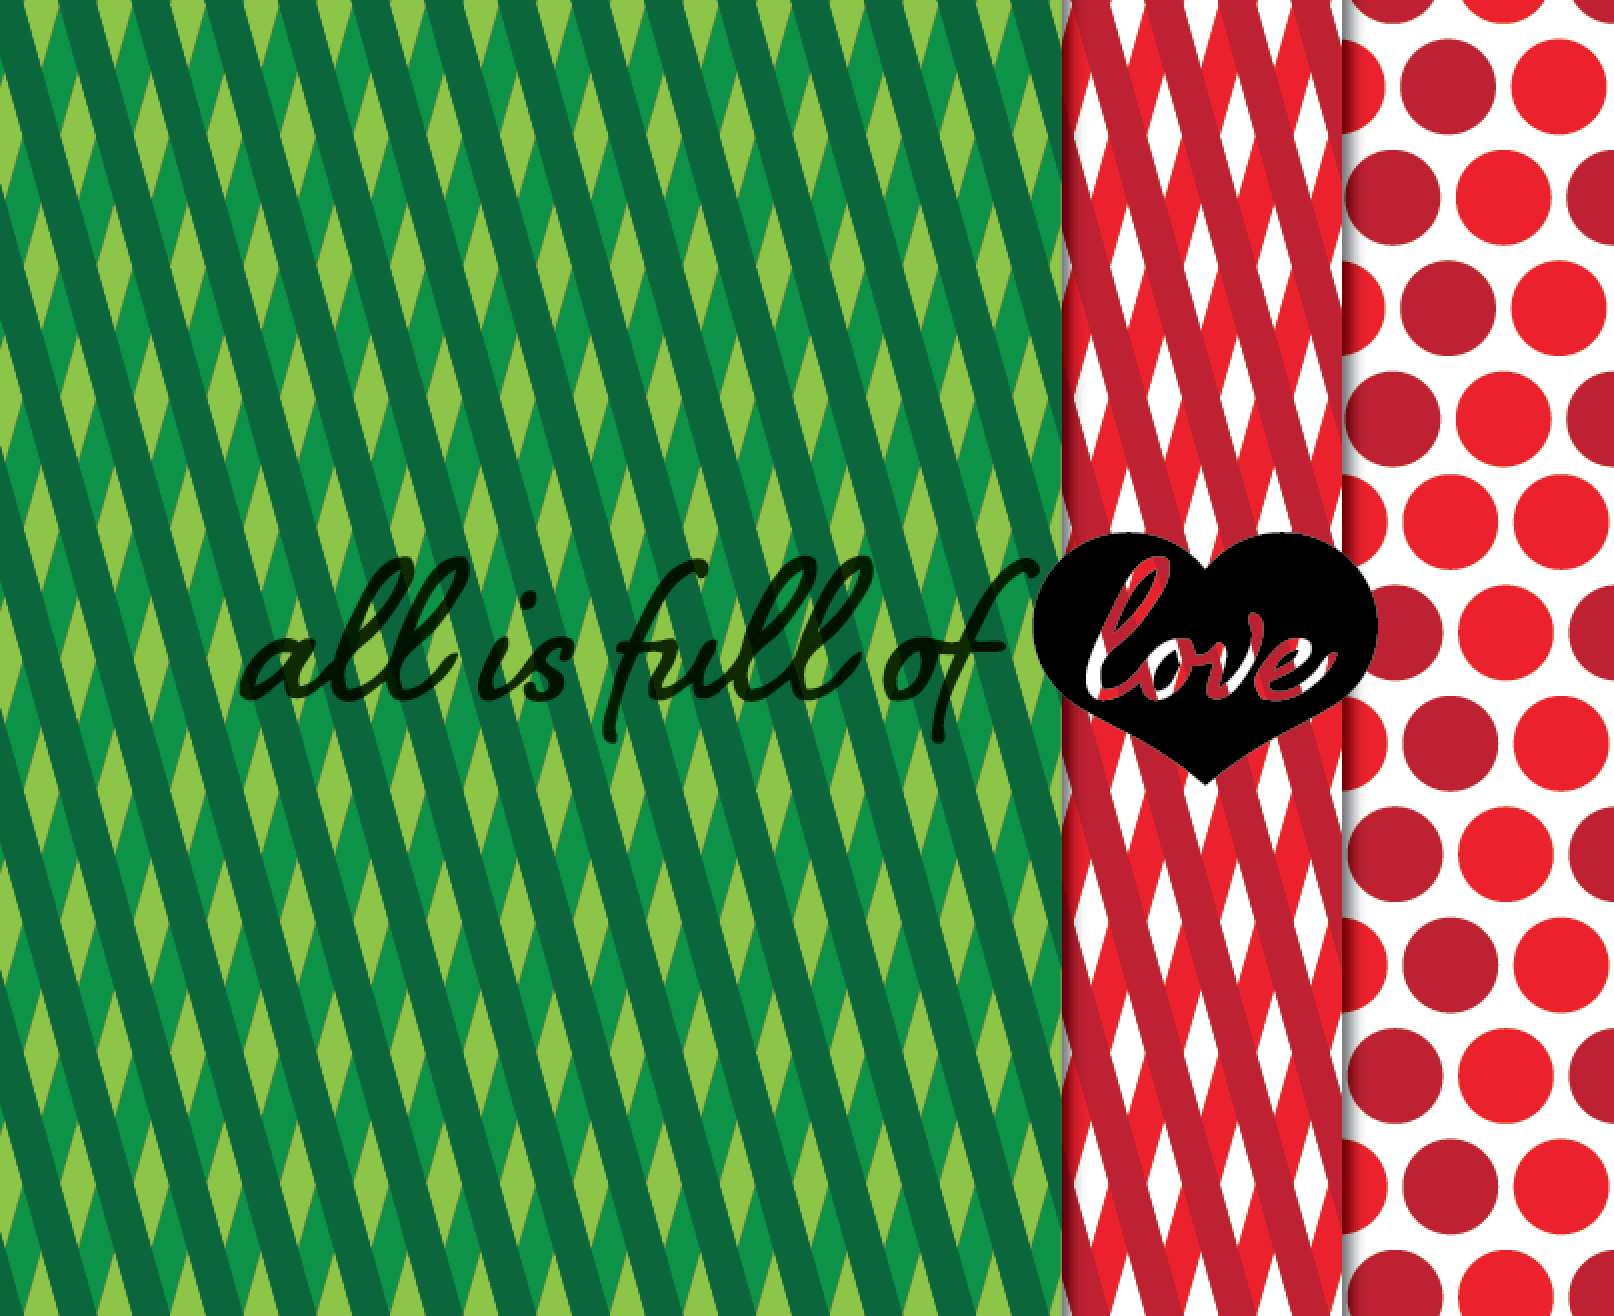 Christmas Digital Paper Pack Xmas Background Graphics in Red and Green example image 3